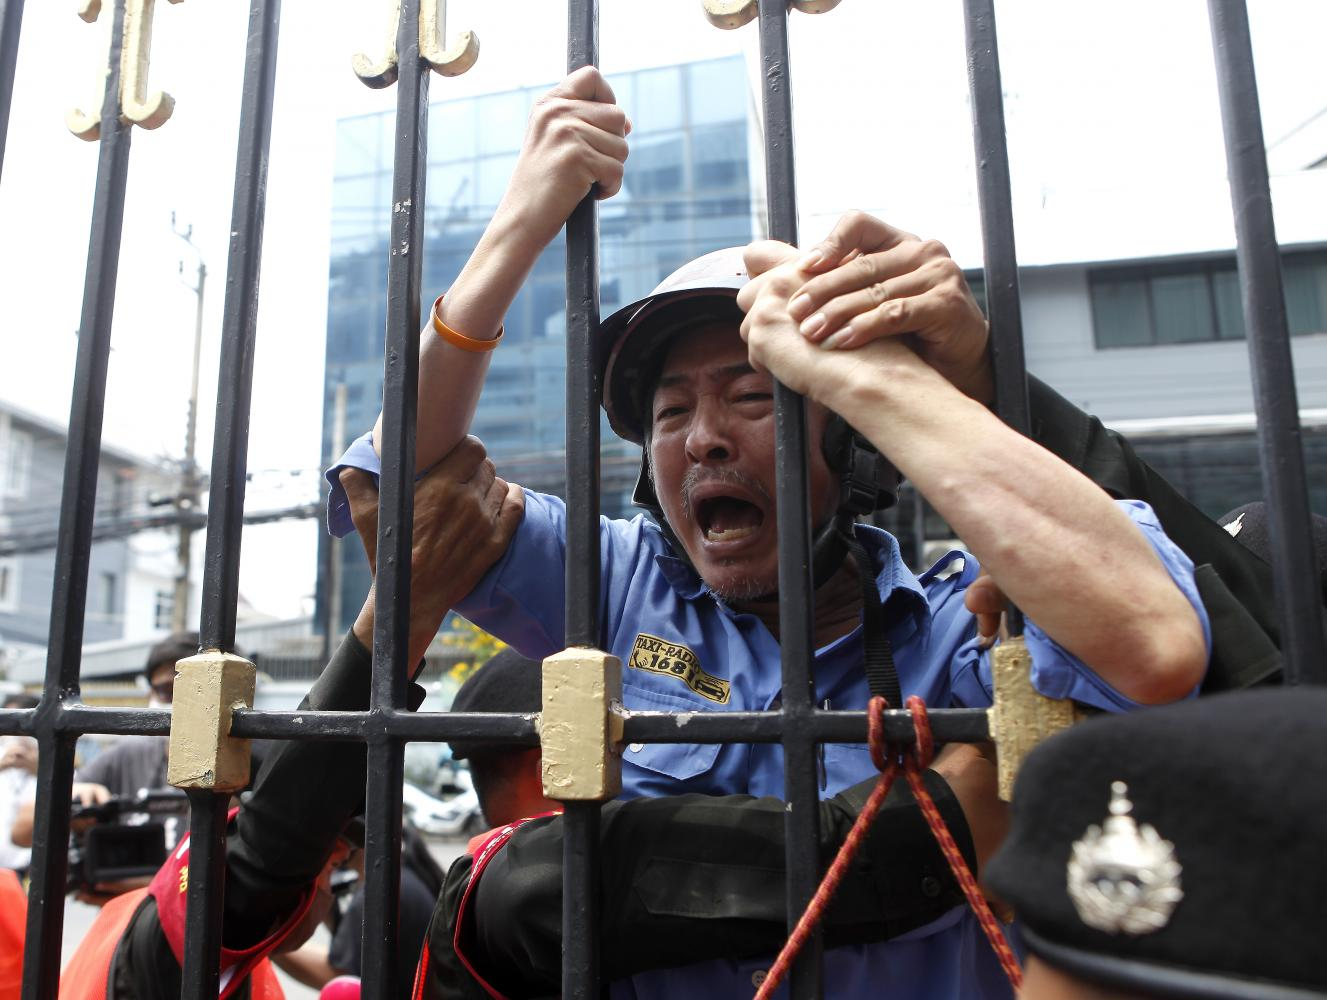 A man tries to climb up a fence at the Finance Ministry out of frustration after he missed out on the government's 5,000-baht handout despite being eligible. Nutthawat Wicheanbut